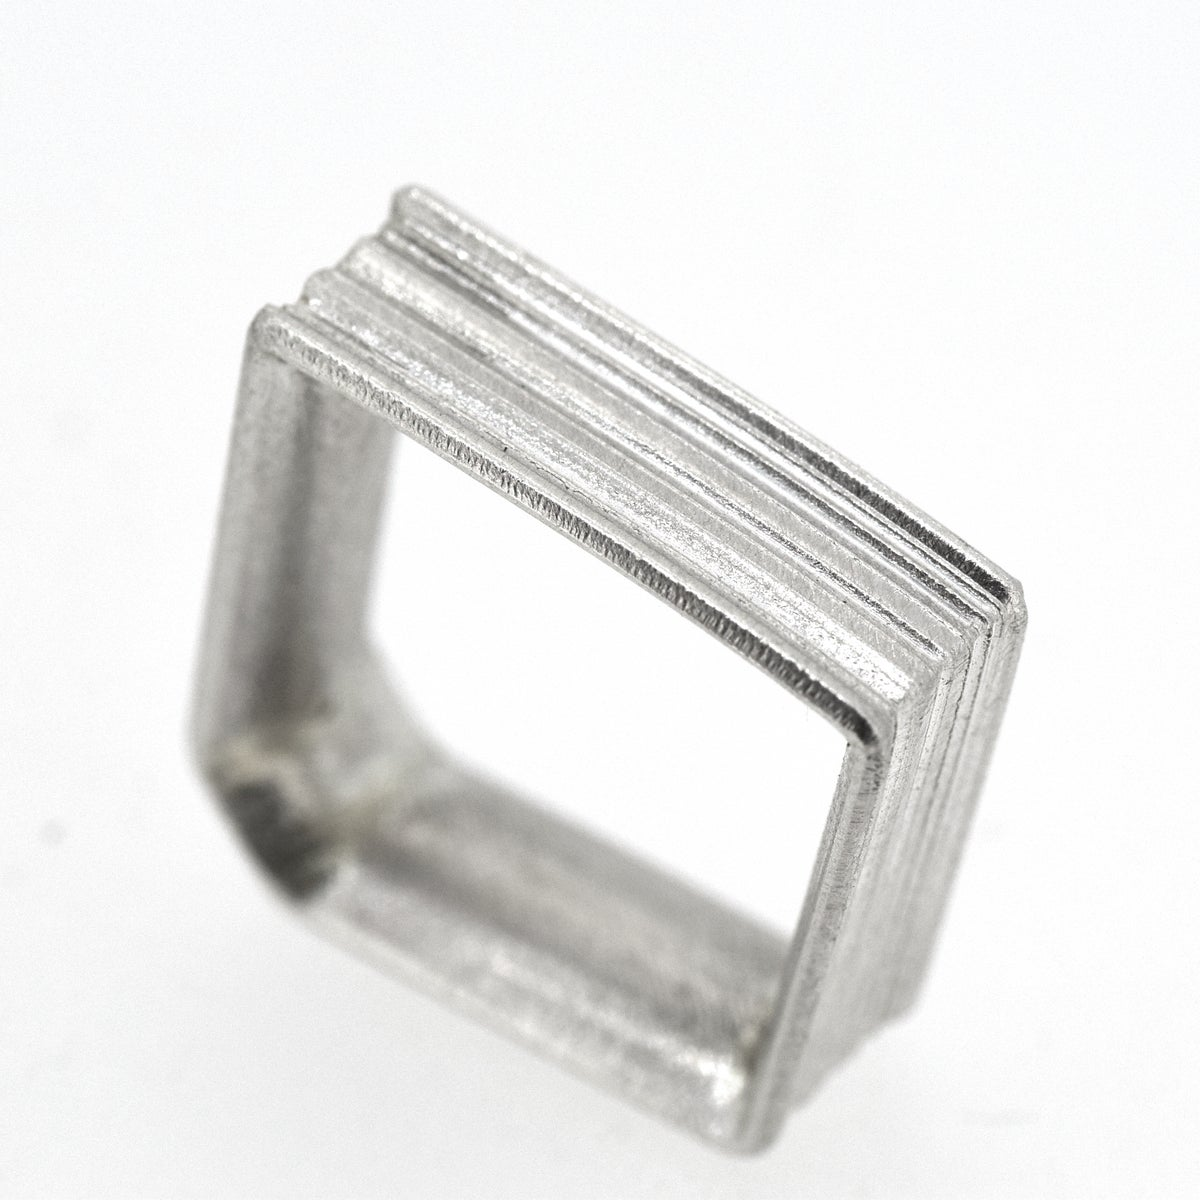 Sterling Angled Round, grooved 'Strata' Ring. 7mm diameter band with a rounded, easy fit inside